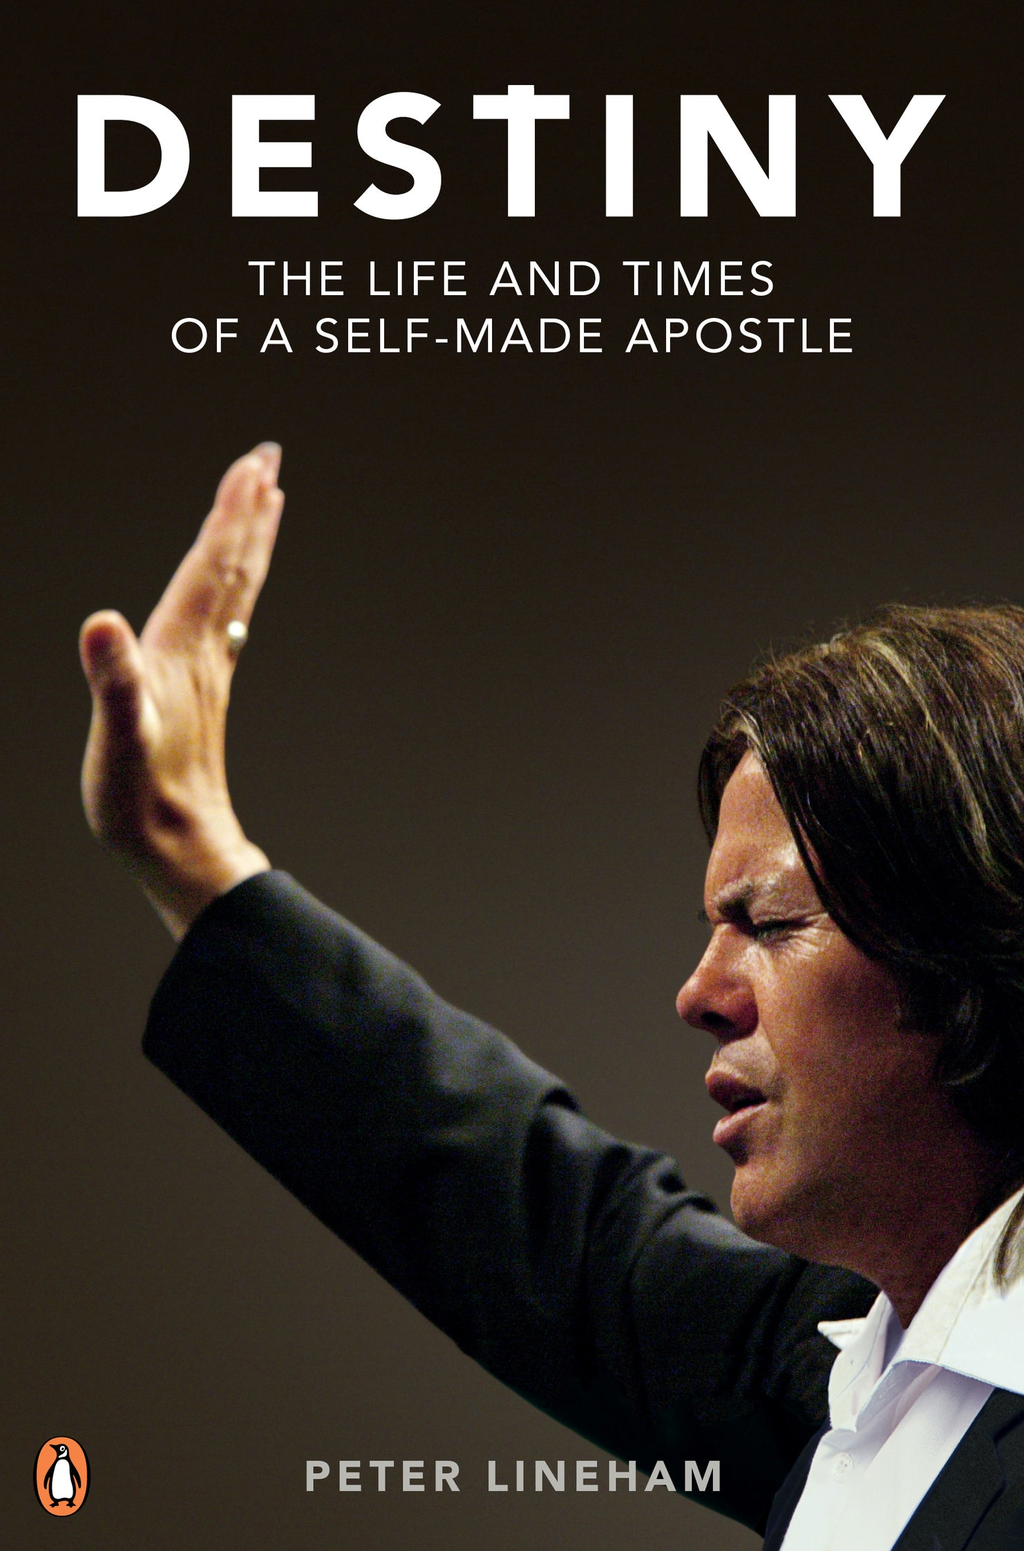 Destiny The Life and Times of a Self-Made Apostle